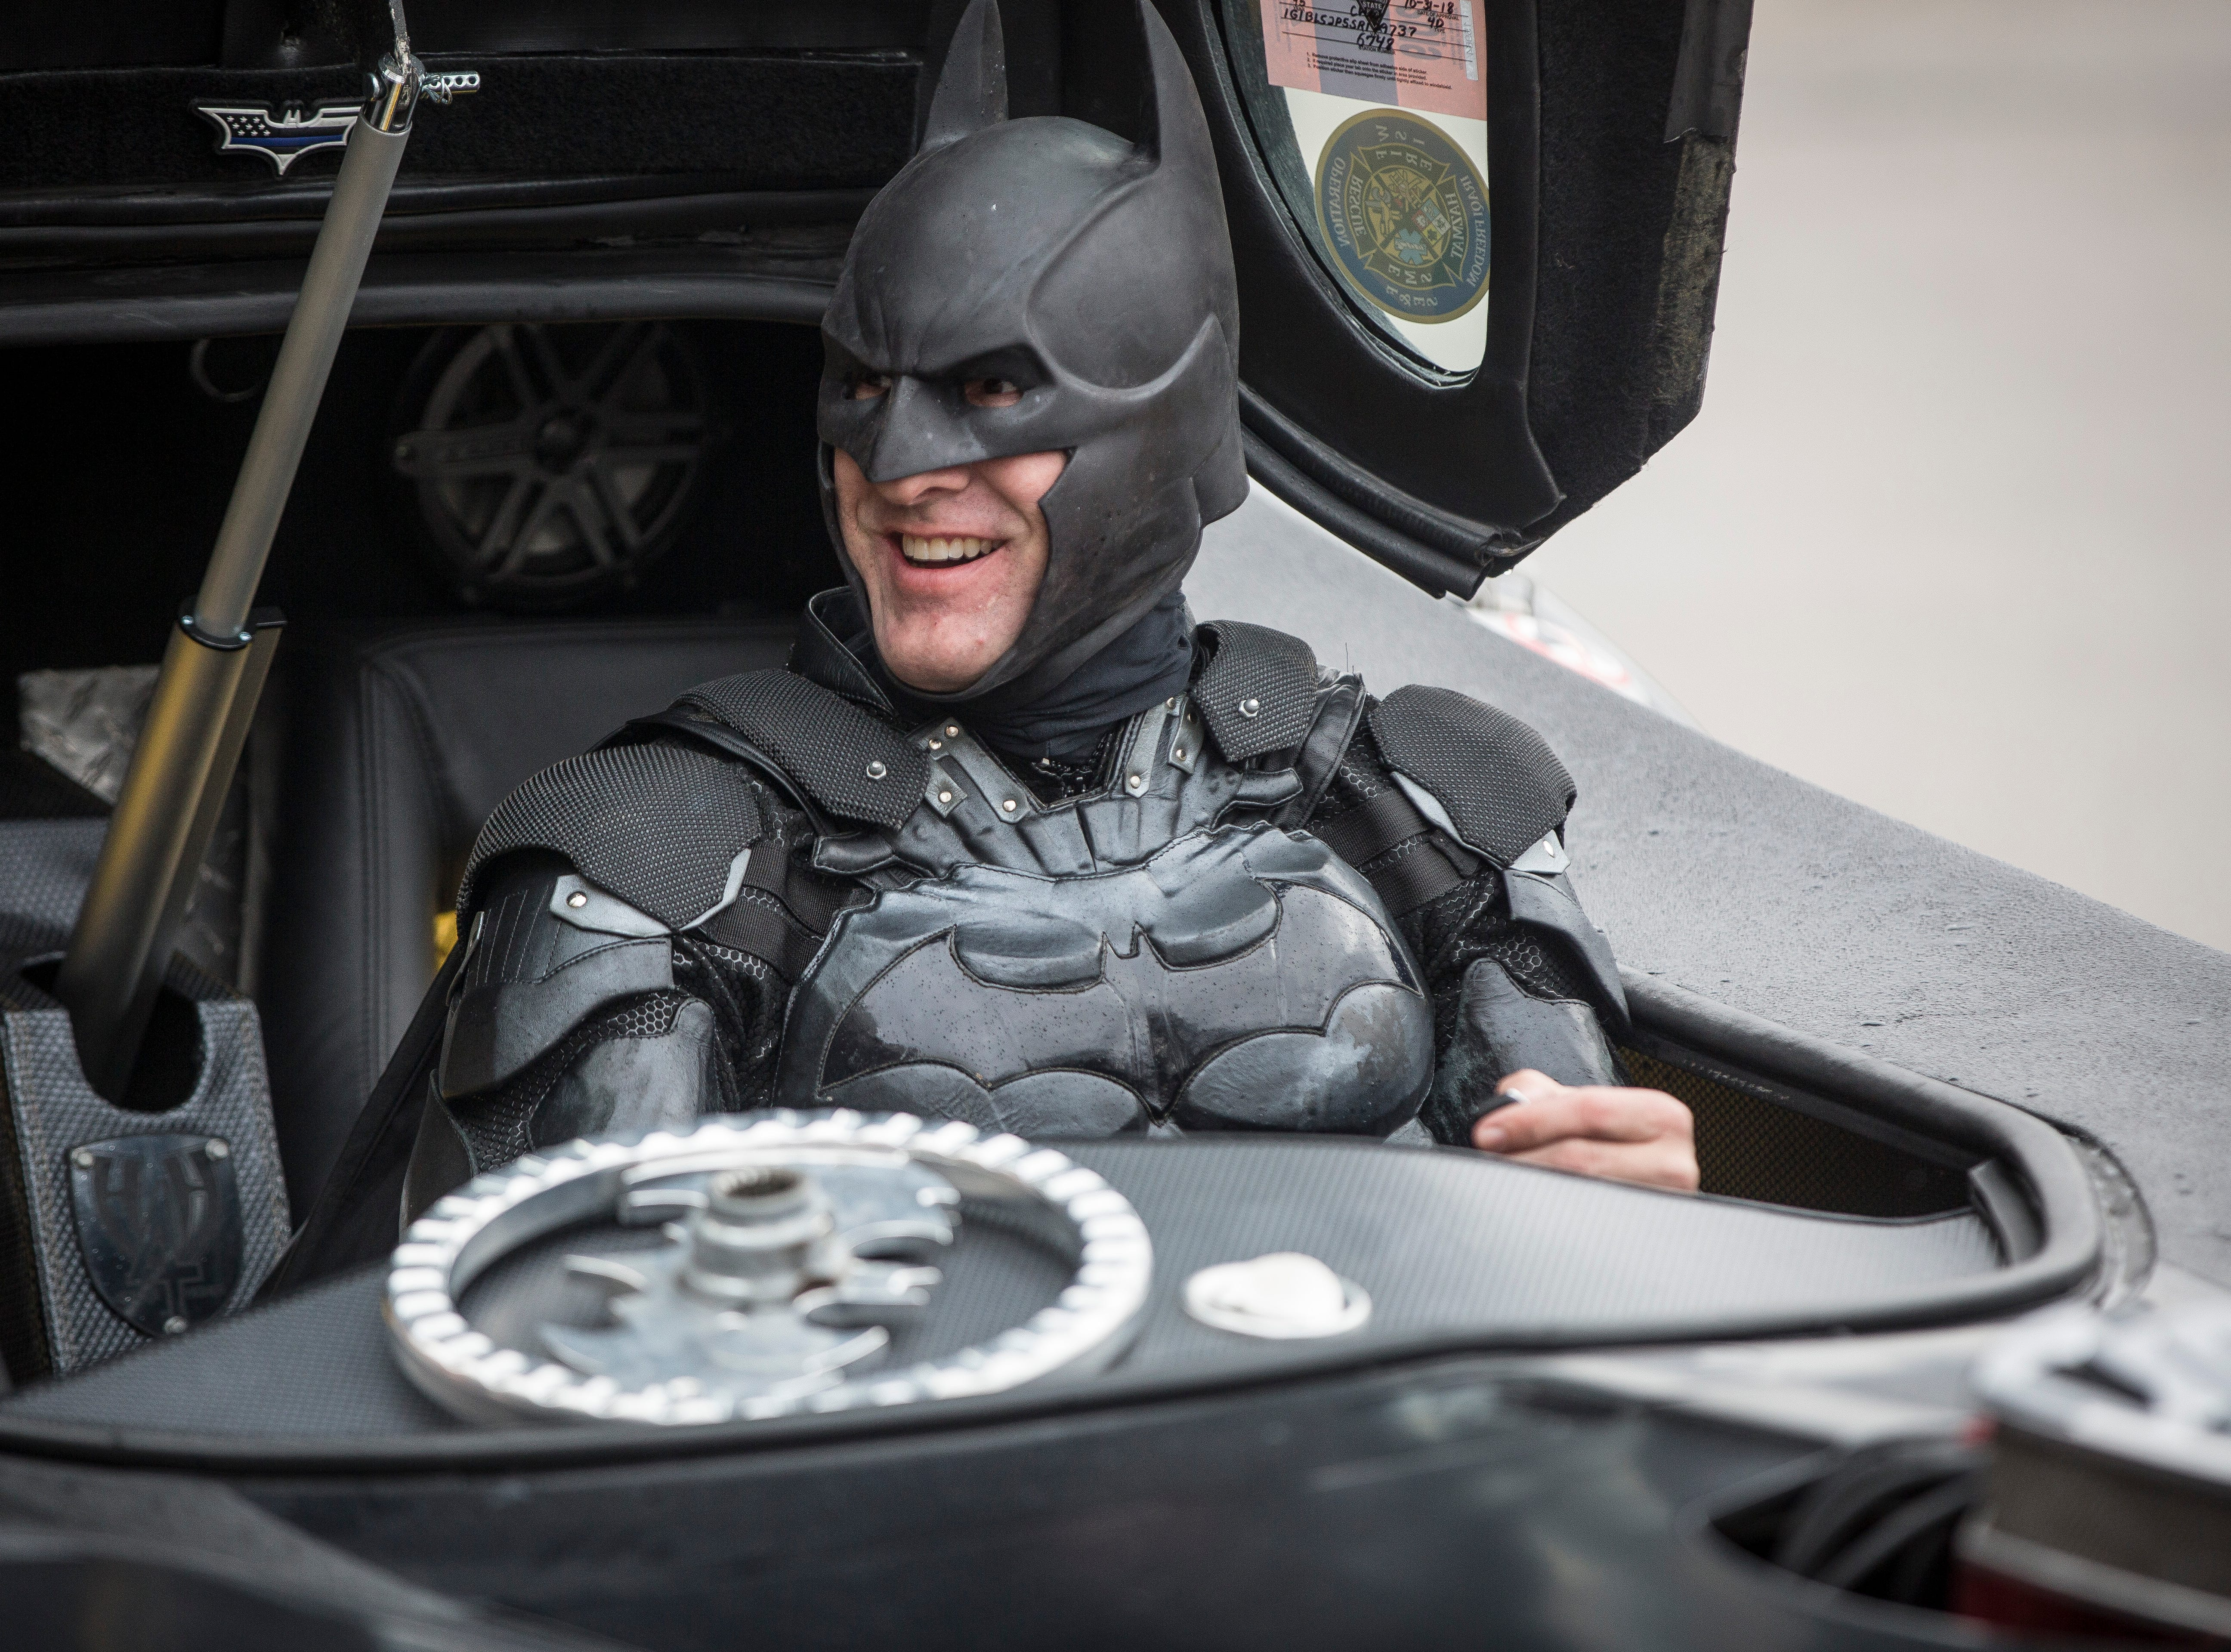 John Buckland with the H4H Foundation dressed Batman and his Batmobile pull into Albany Elementary on Monday to visit Christian Daugherty, an Albany boy who has been battling cancer.